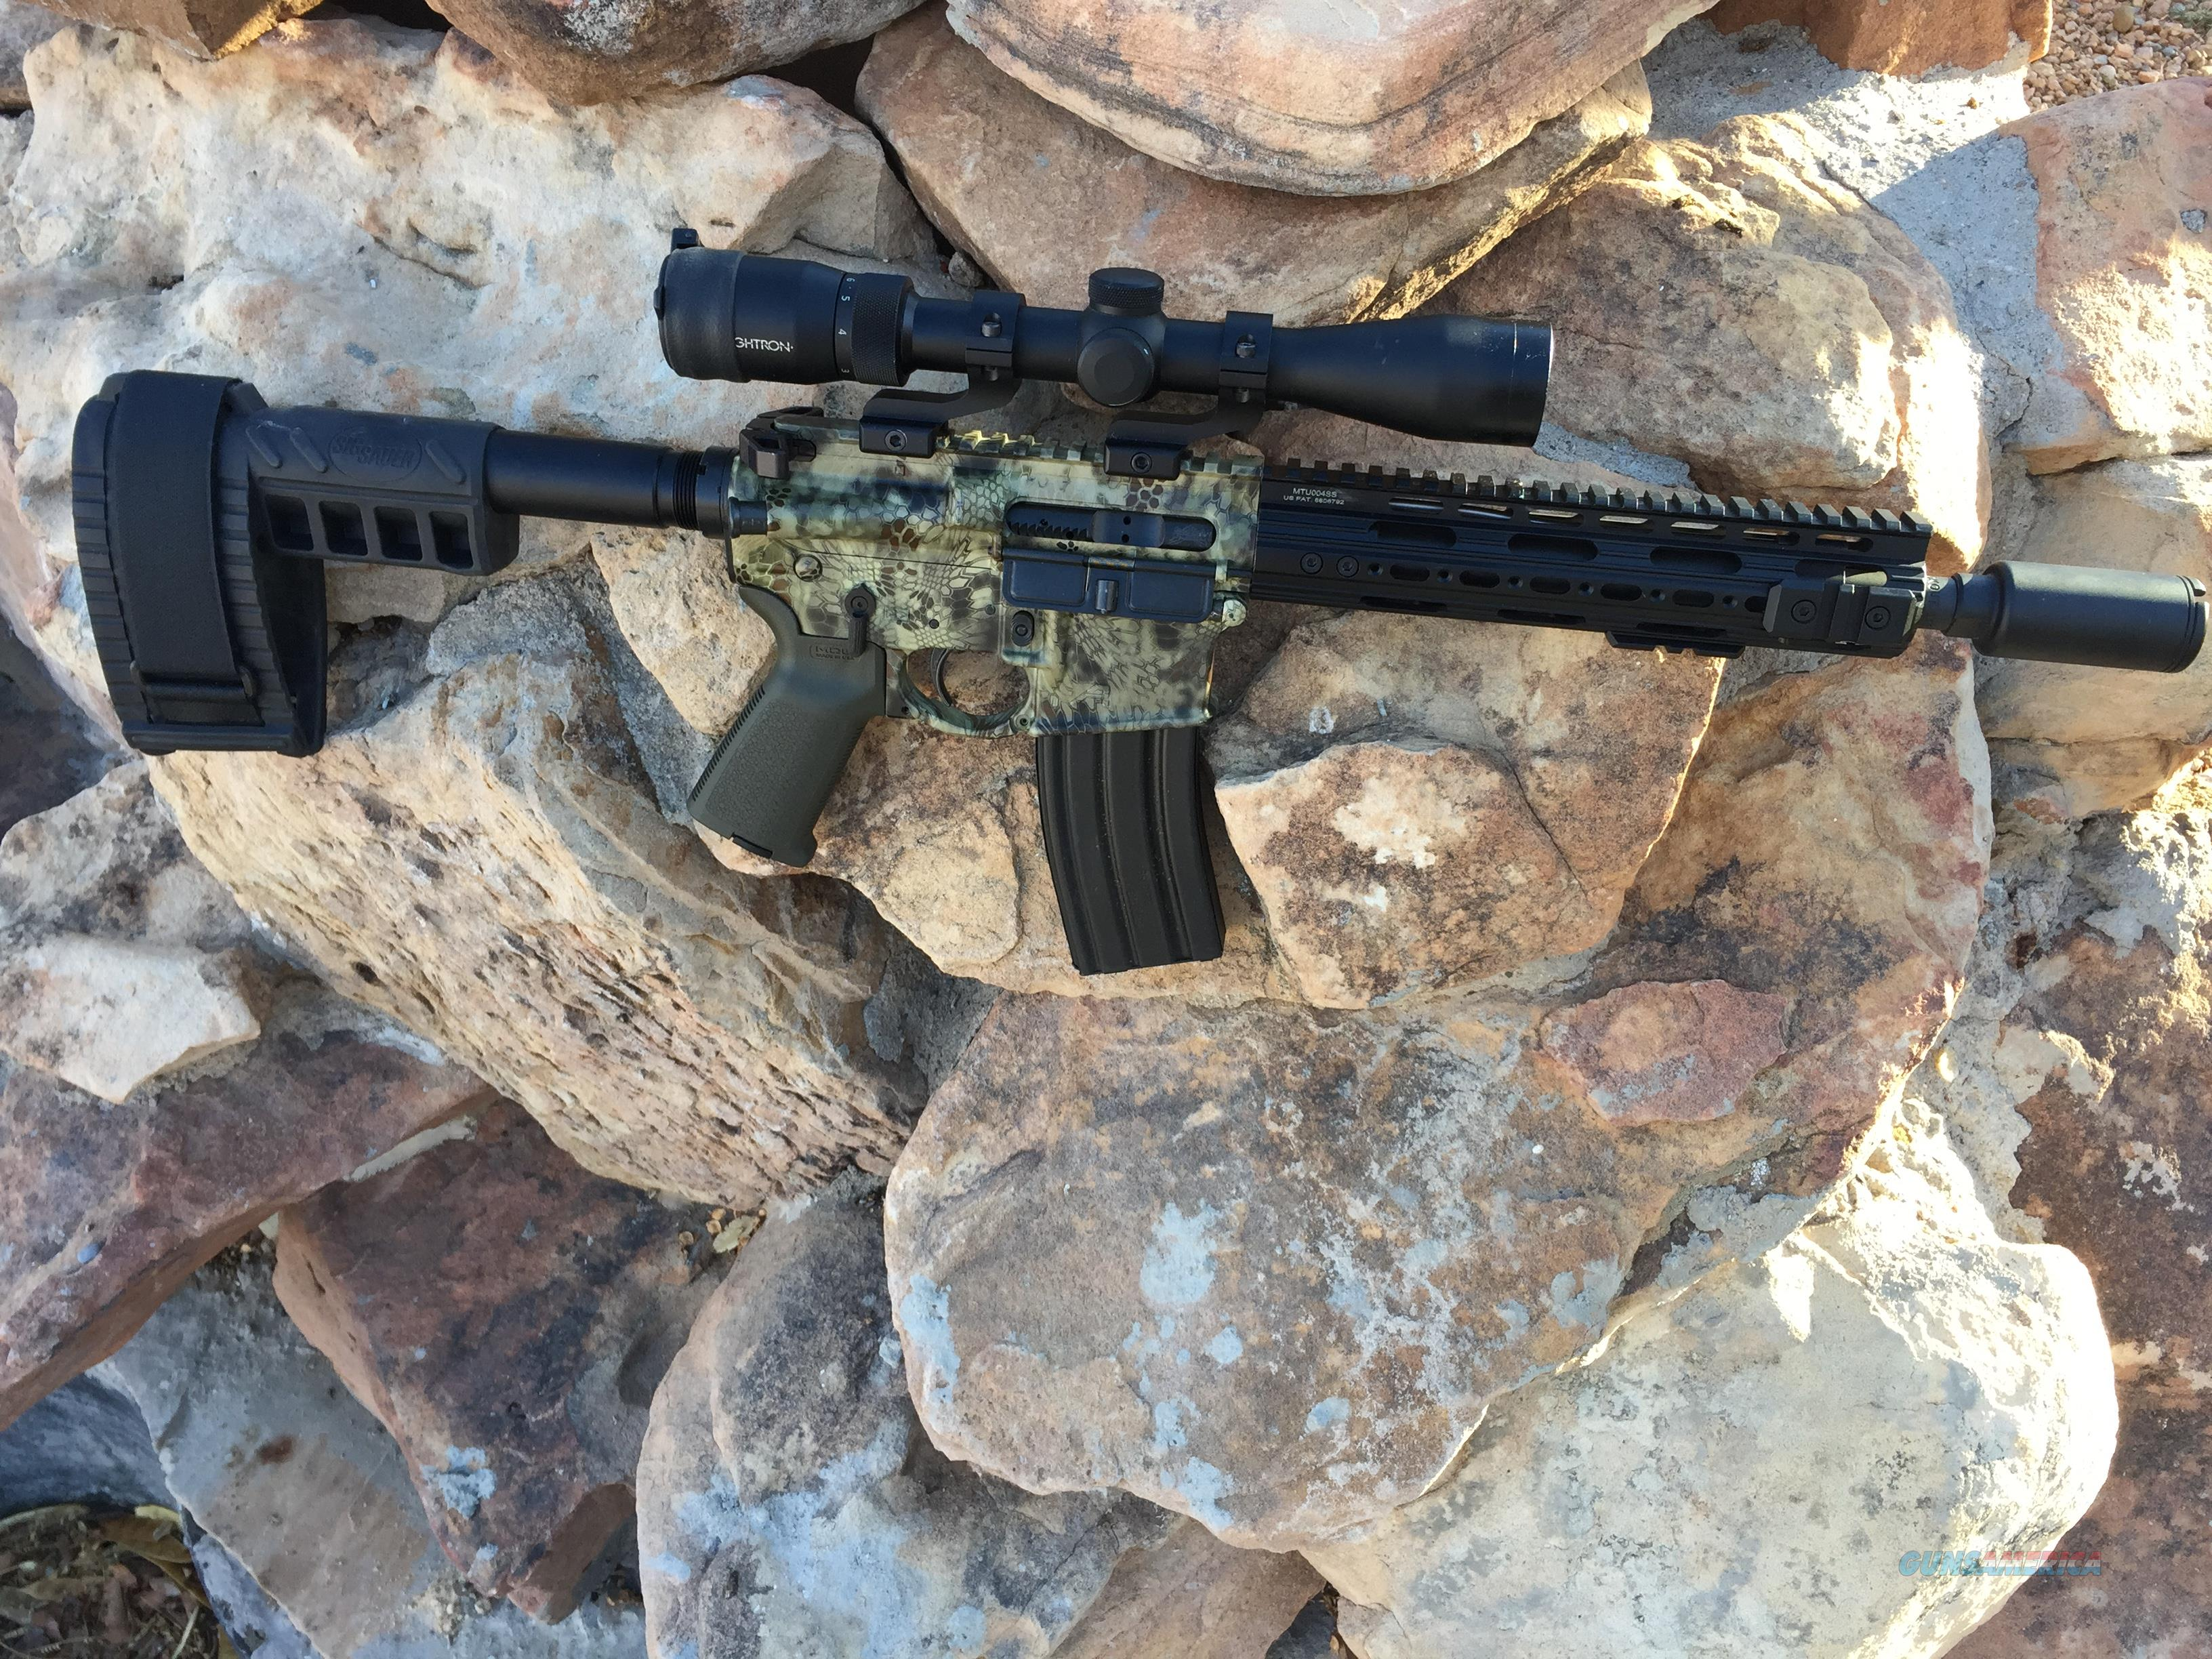 AR-15 Pistol 300 Blackout10.5 Barrel Graphics by Carnivore of Albuquerque  Guns > Rifles > AR-15 Rifles - Small Manufacturers > Complete Rifle